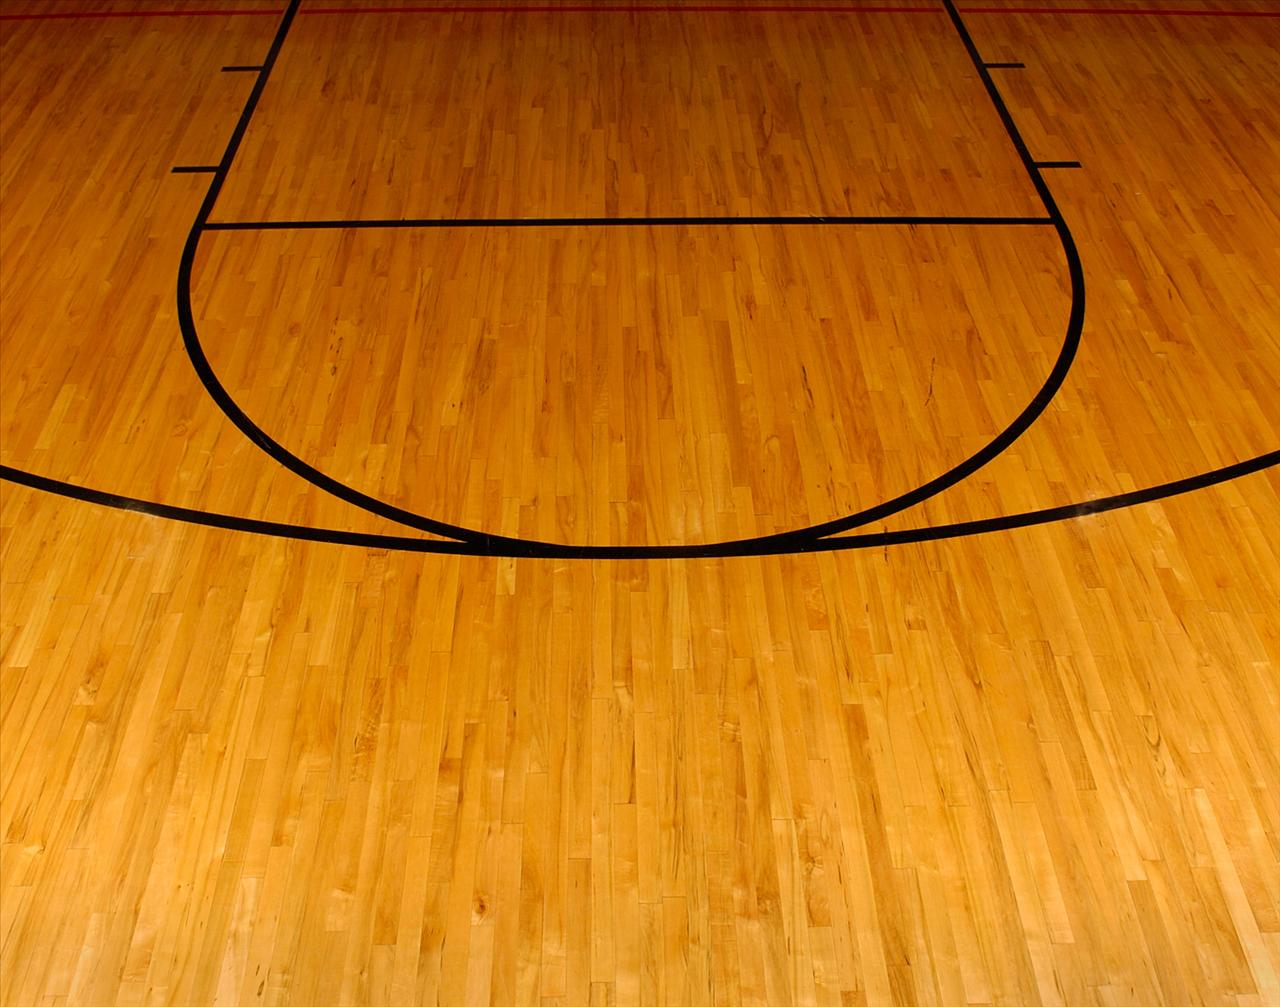 Basketball Court Backgrounds